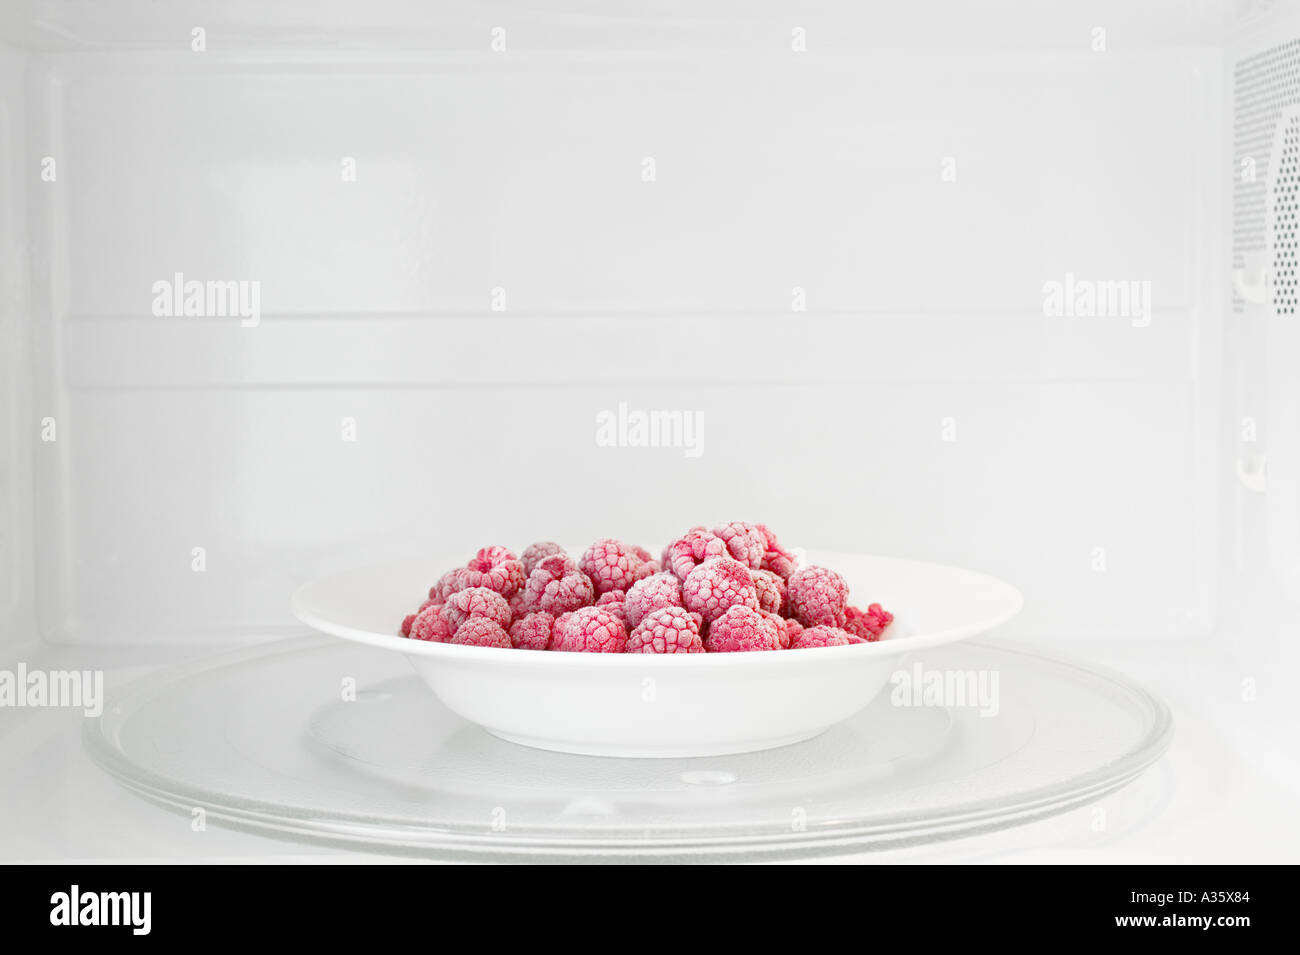 Microwave Plate Plate Of Frozen Raspberries In Microwave Oven Stock Photo 3487363